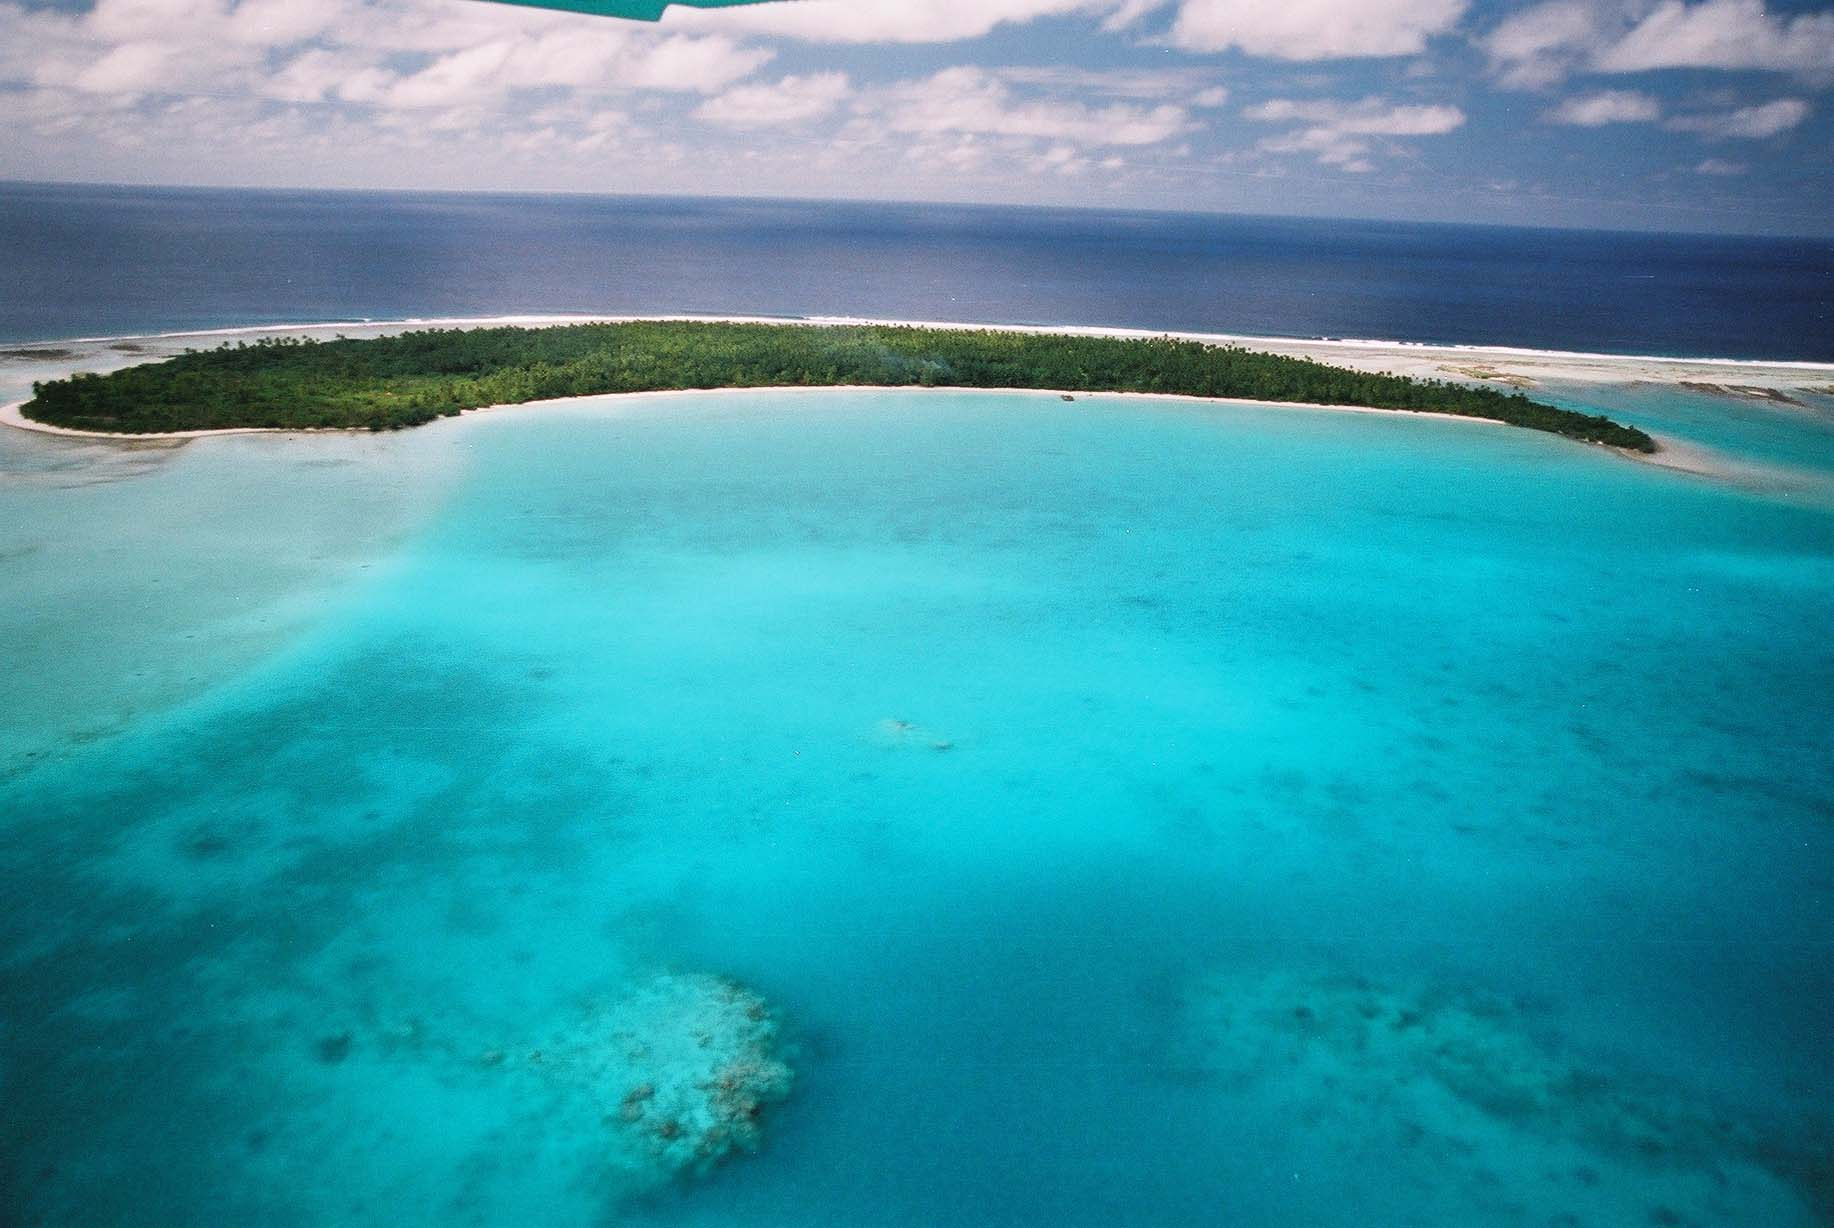 Download this Unreal Paradise Cook Islands Lagoon Aerial View picture